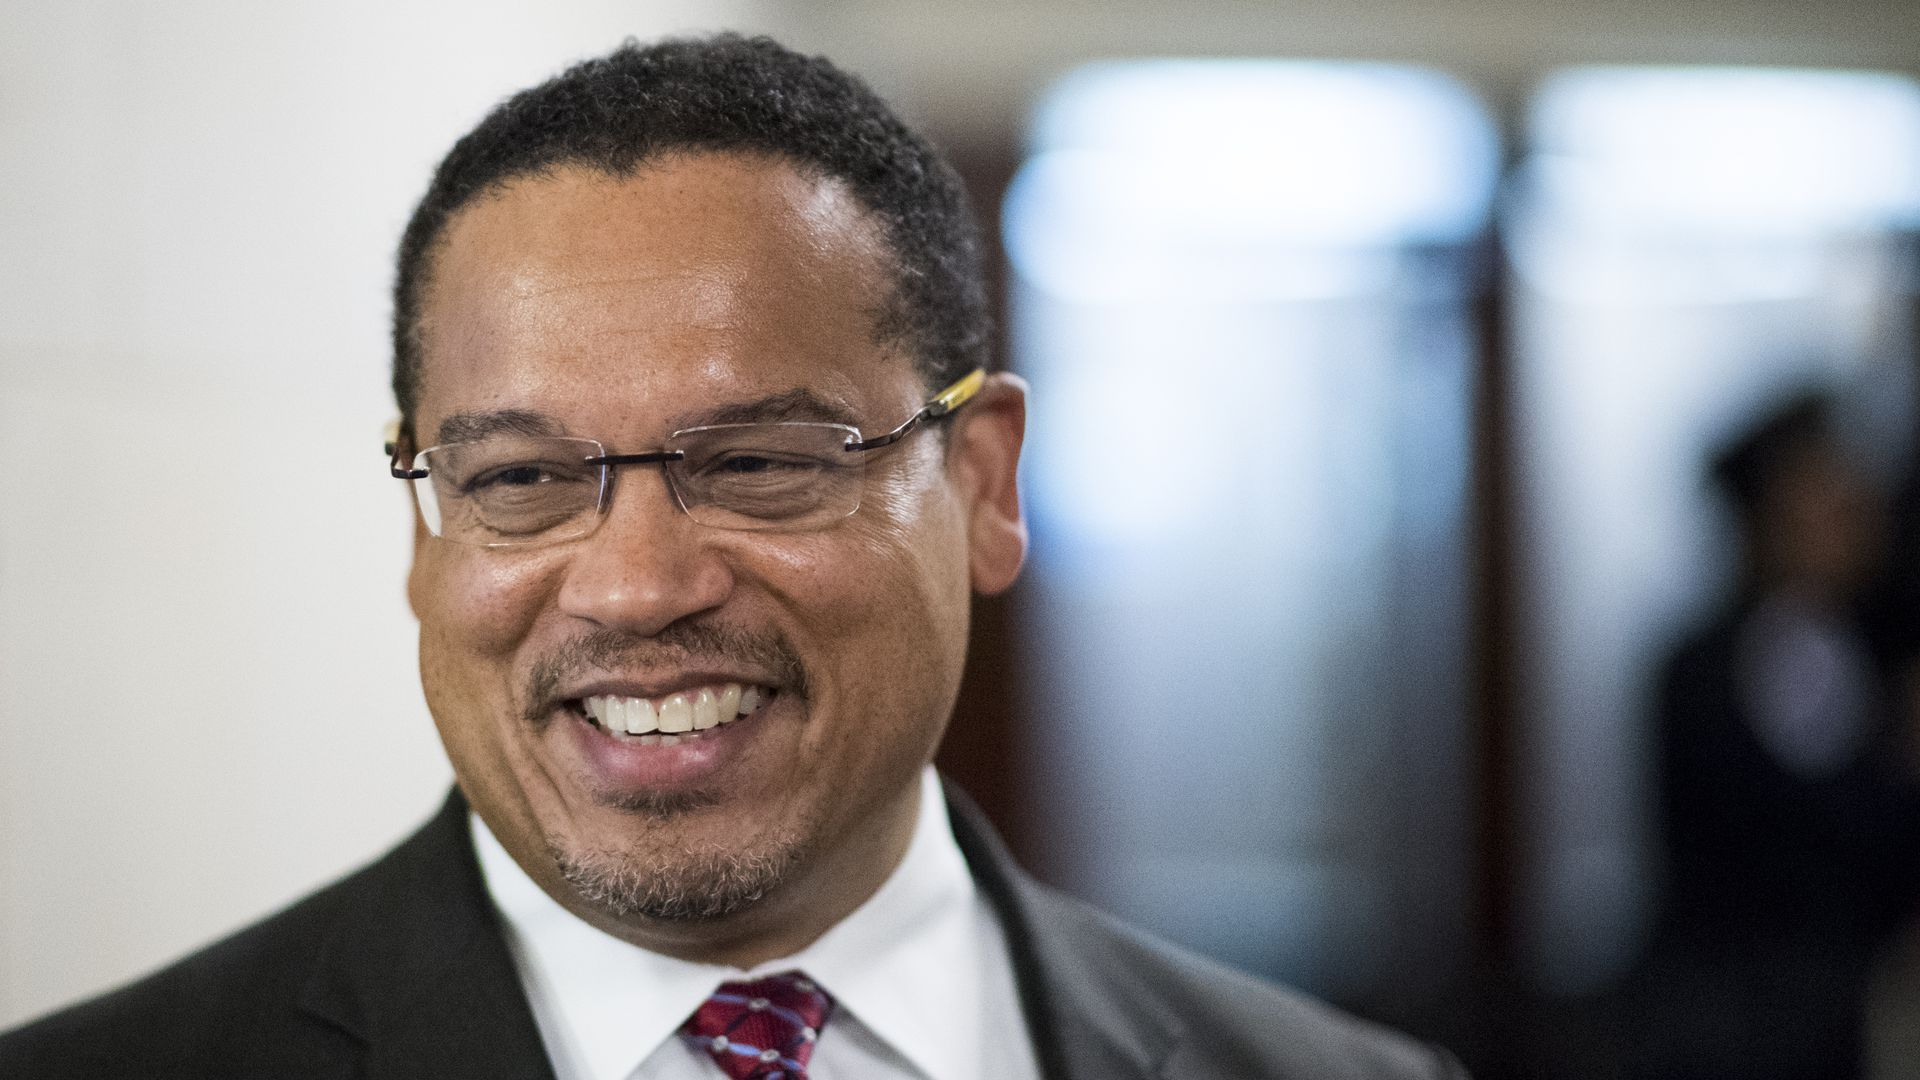 Rep. Keith Ellison, D-Minn. Photo: Bill Clark/CQ Roll Call